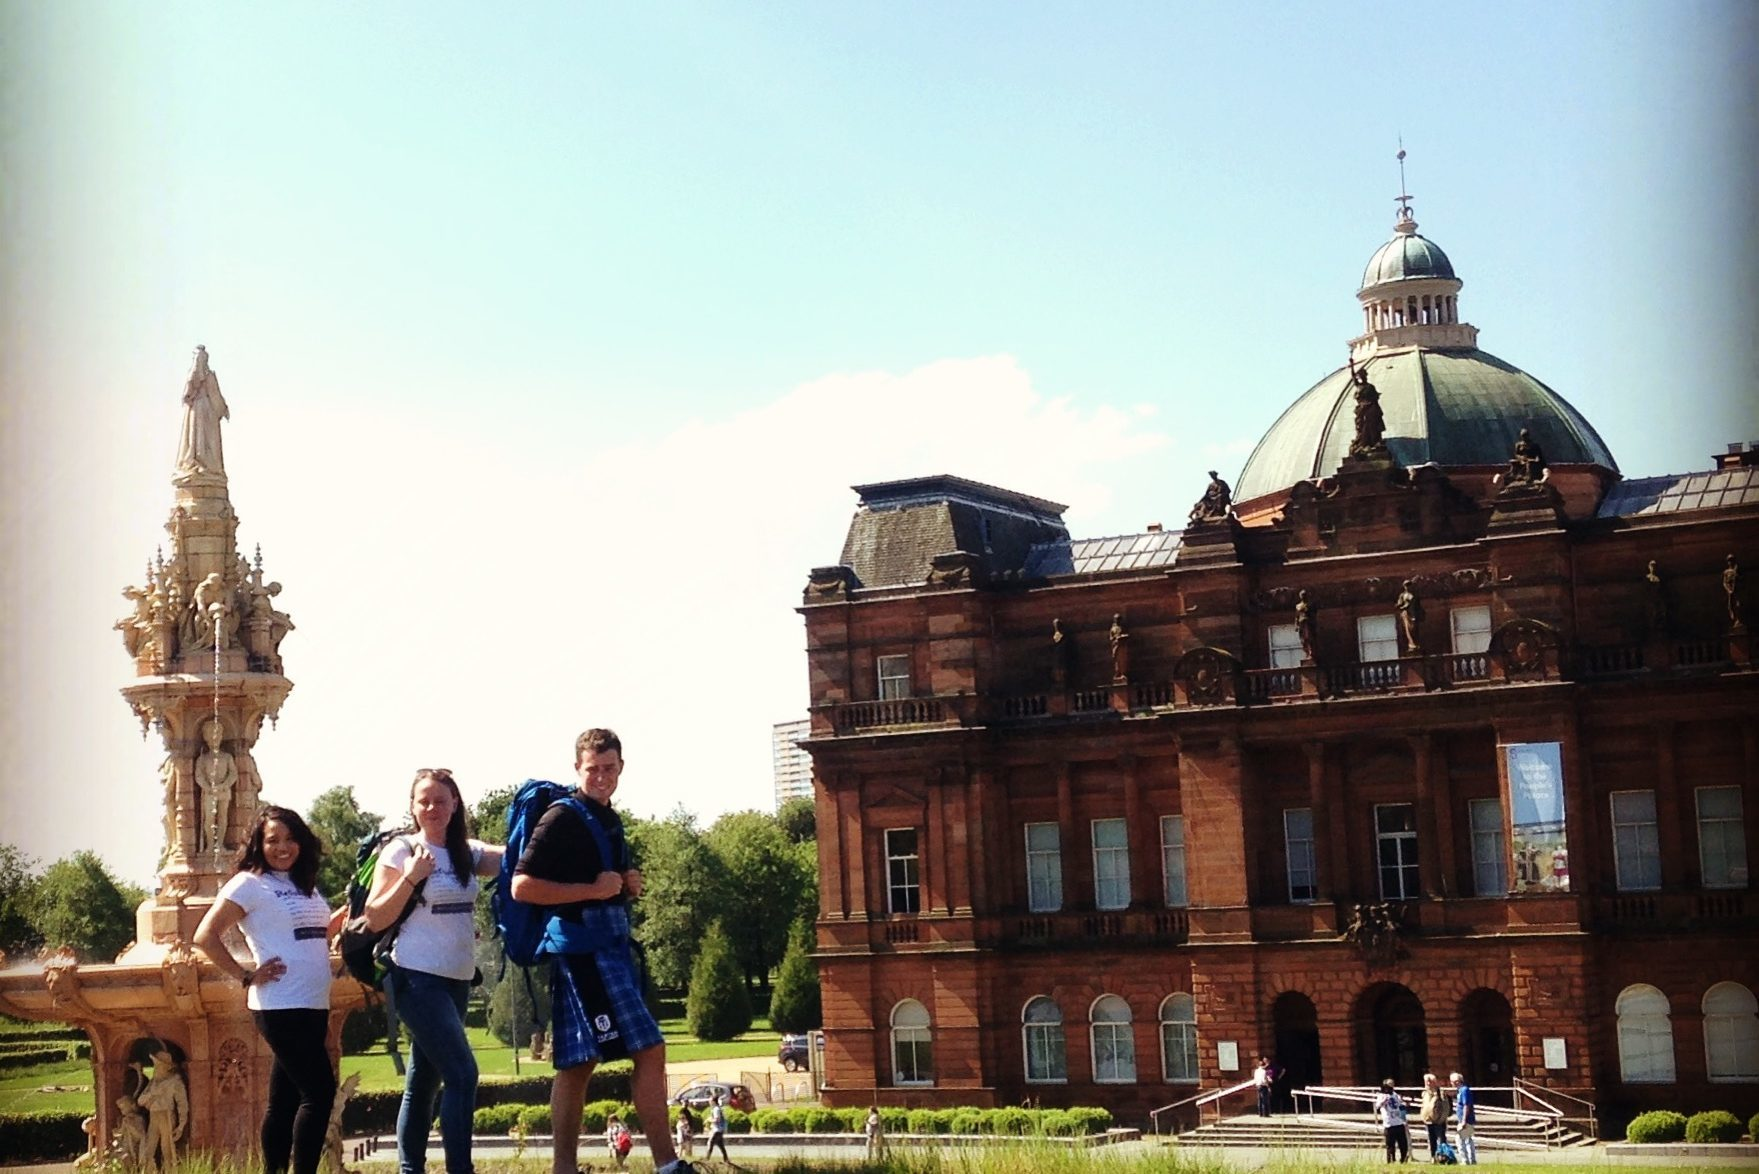 The walkers get ready for their mission, with a little help from the Glasgow sunshine (Gillian Furmage/DC Thomson)